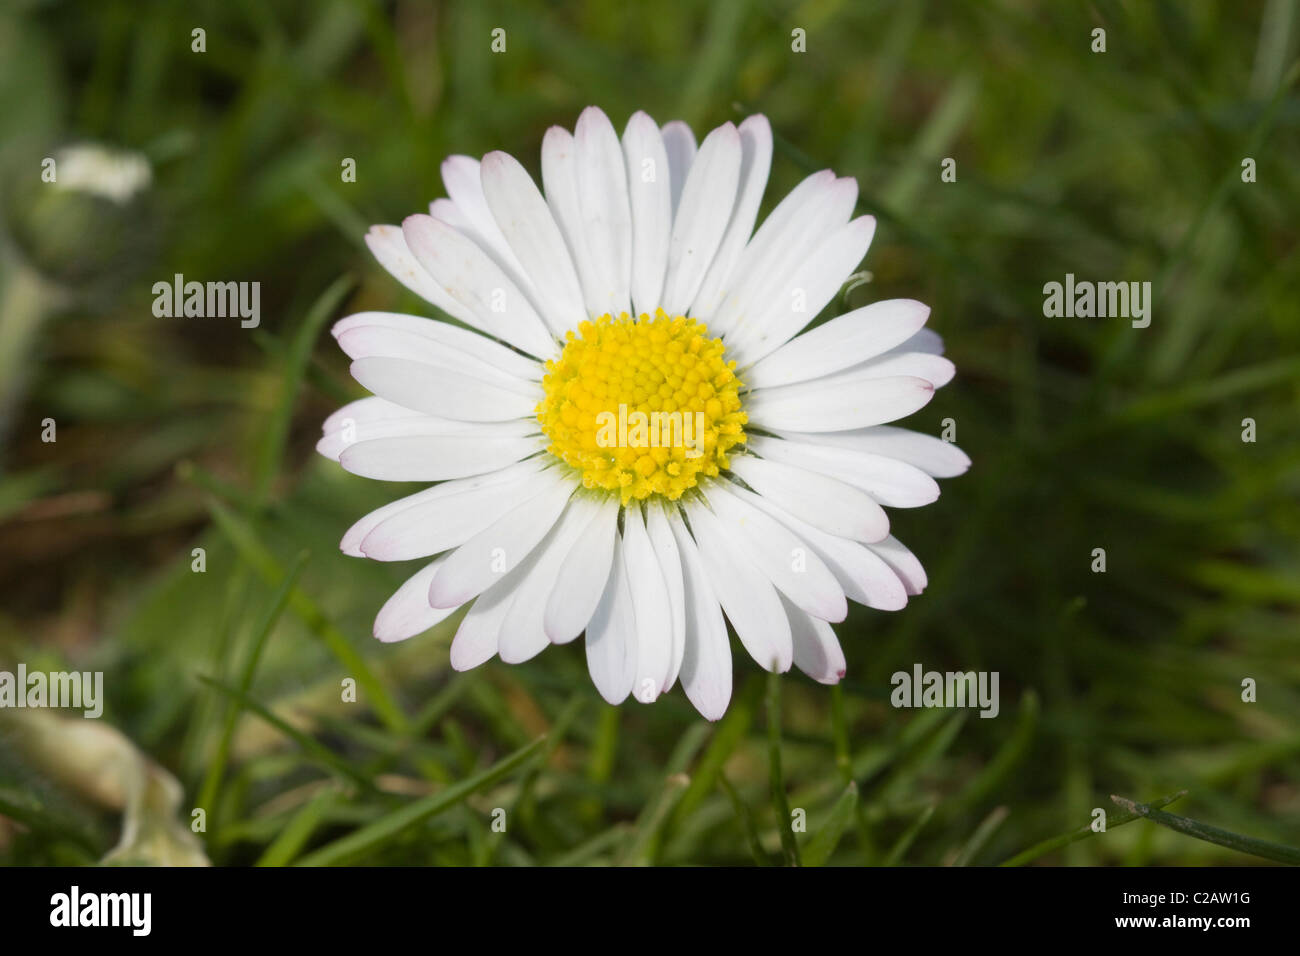 A Daisy in a local meadow - Stock Image